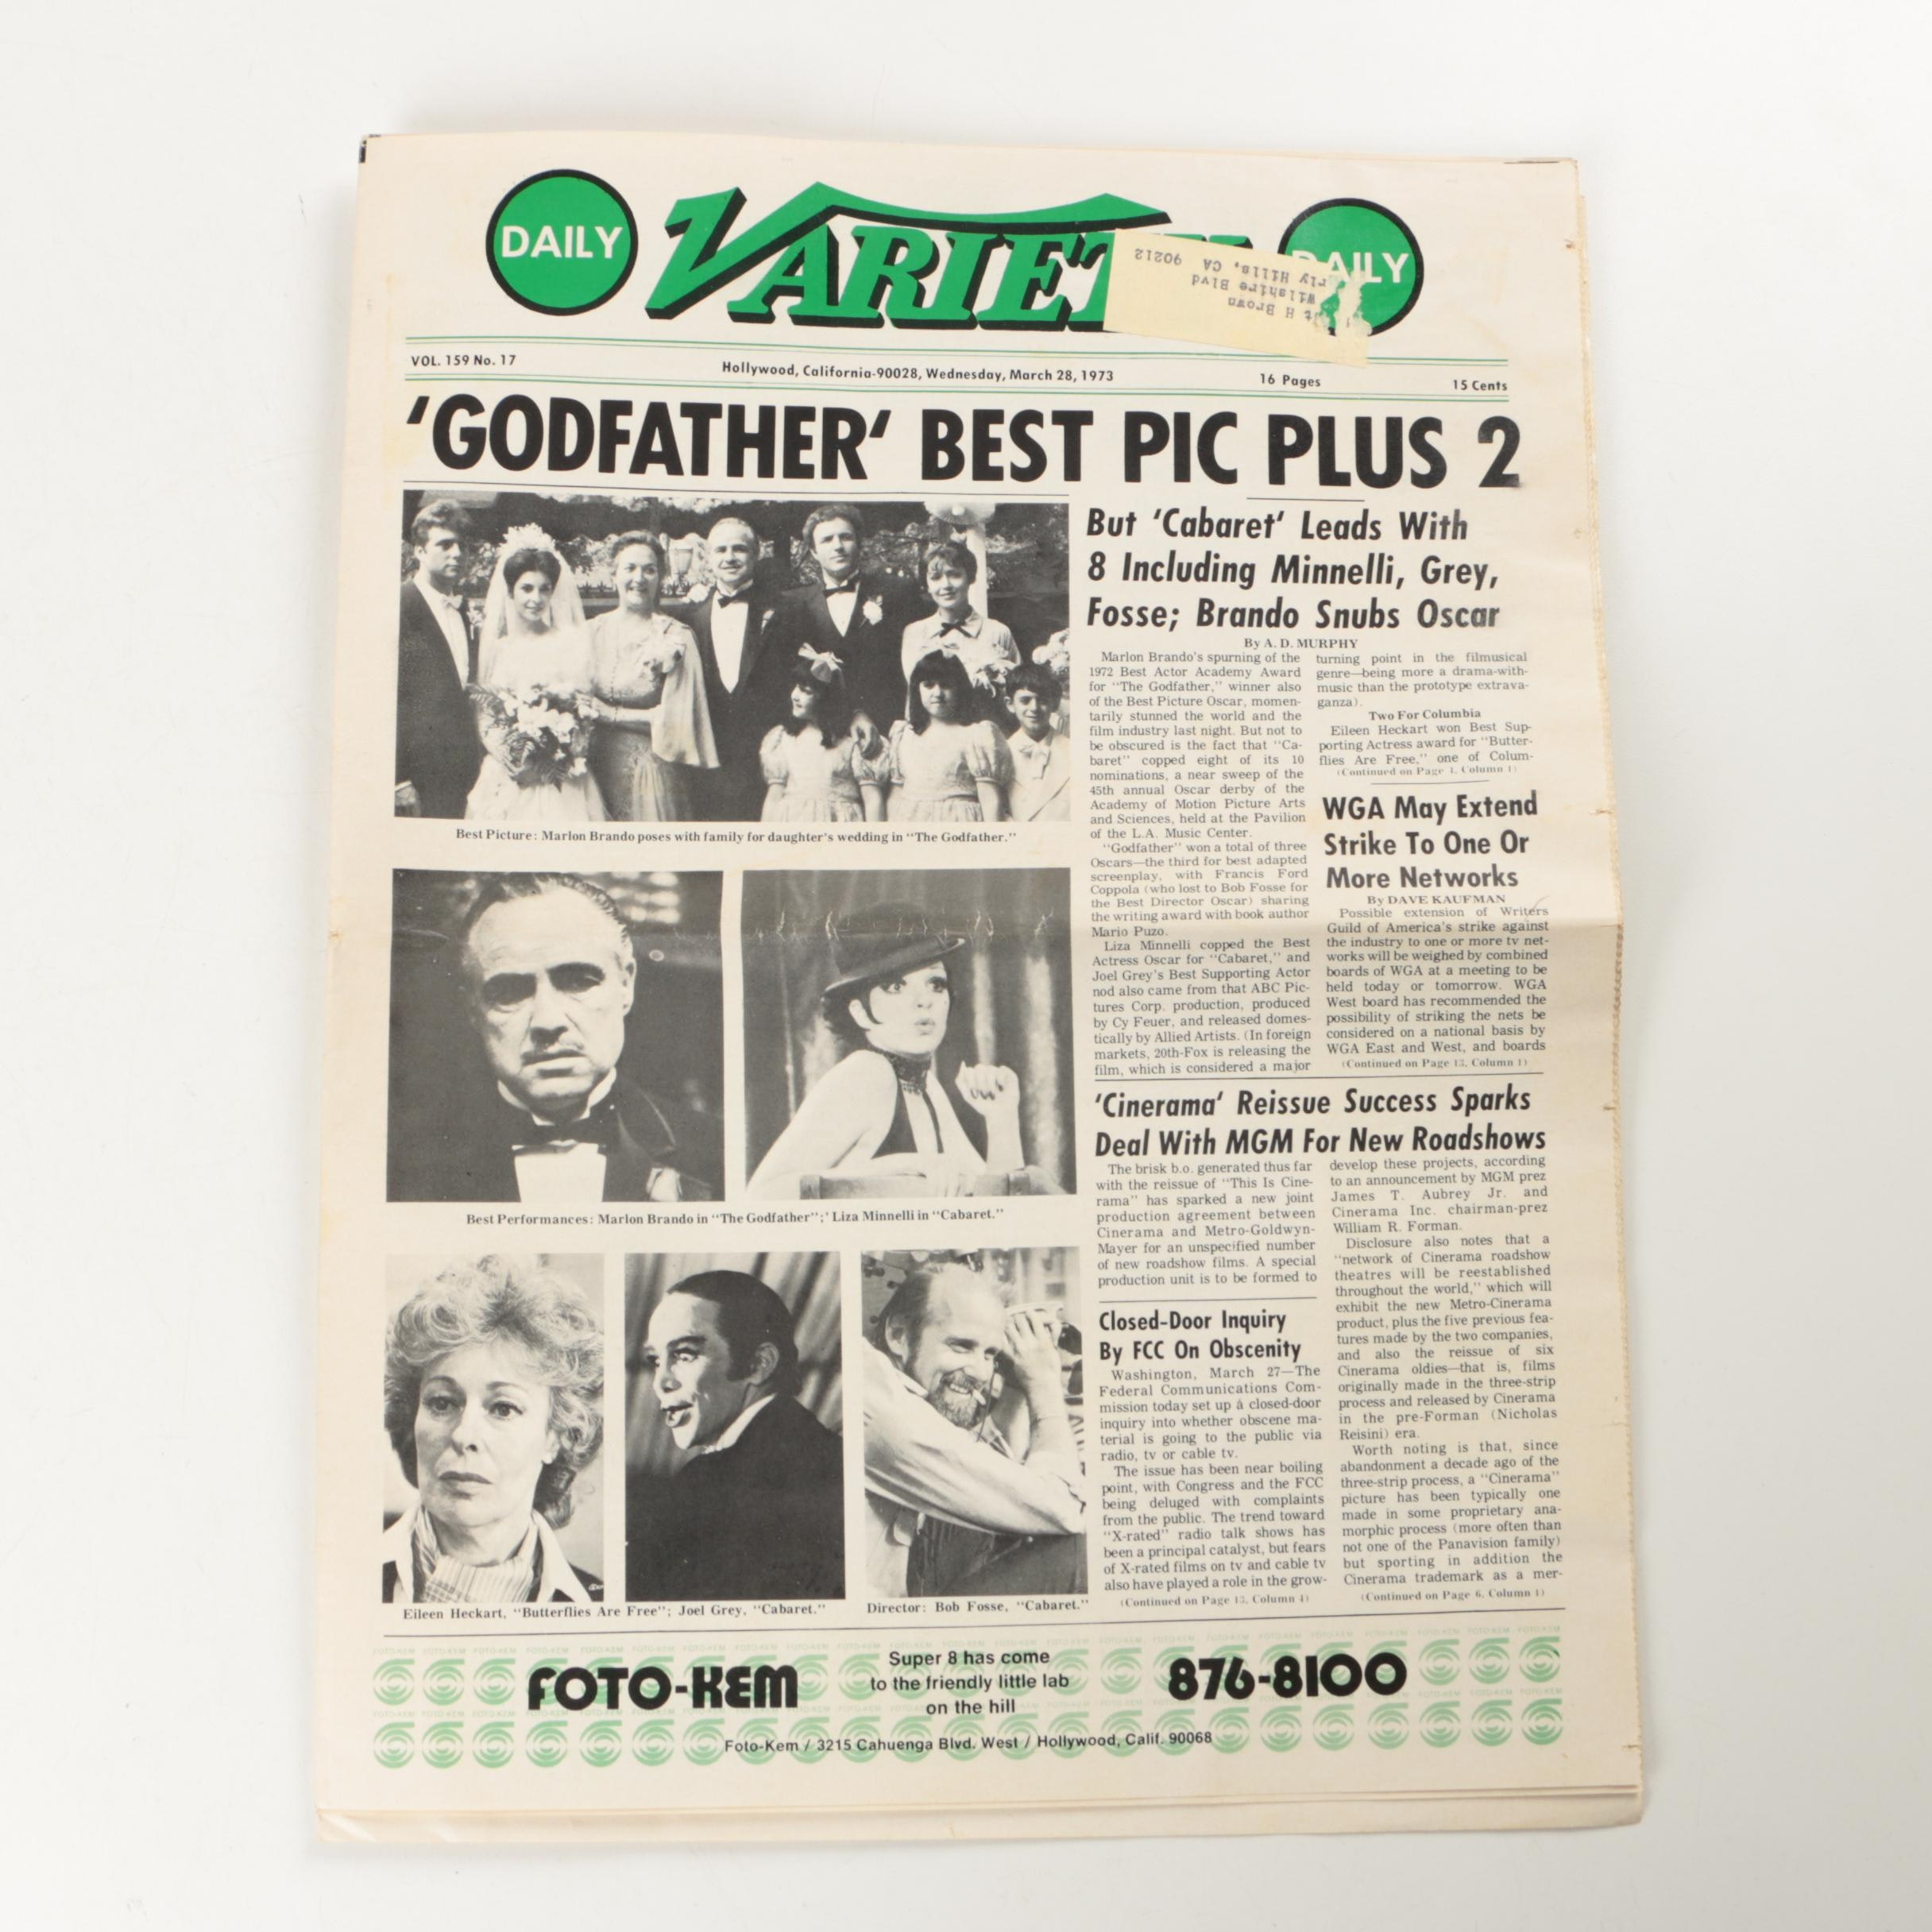 March 28, 1973, Daily Variety Magazine Featuring The Godfather